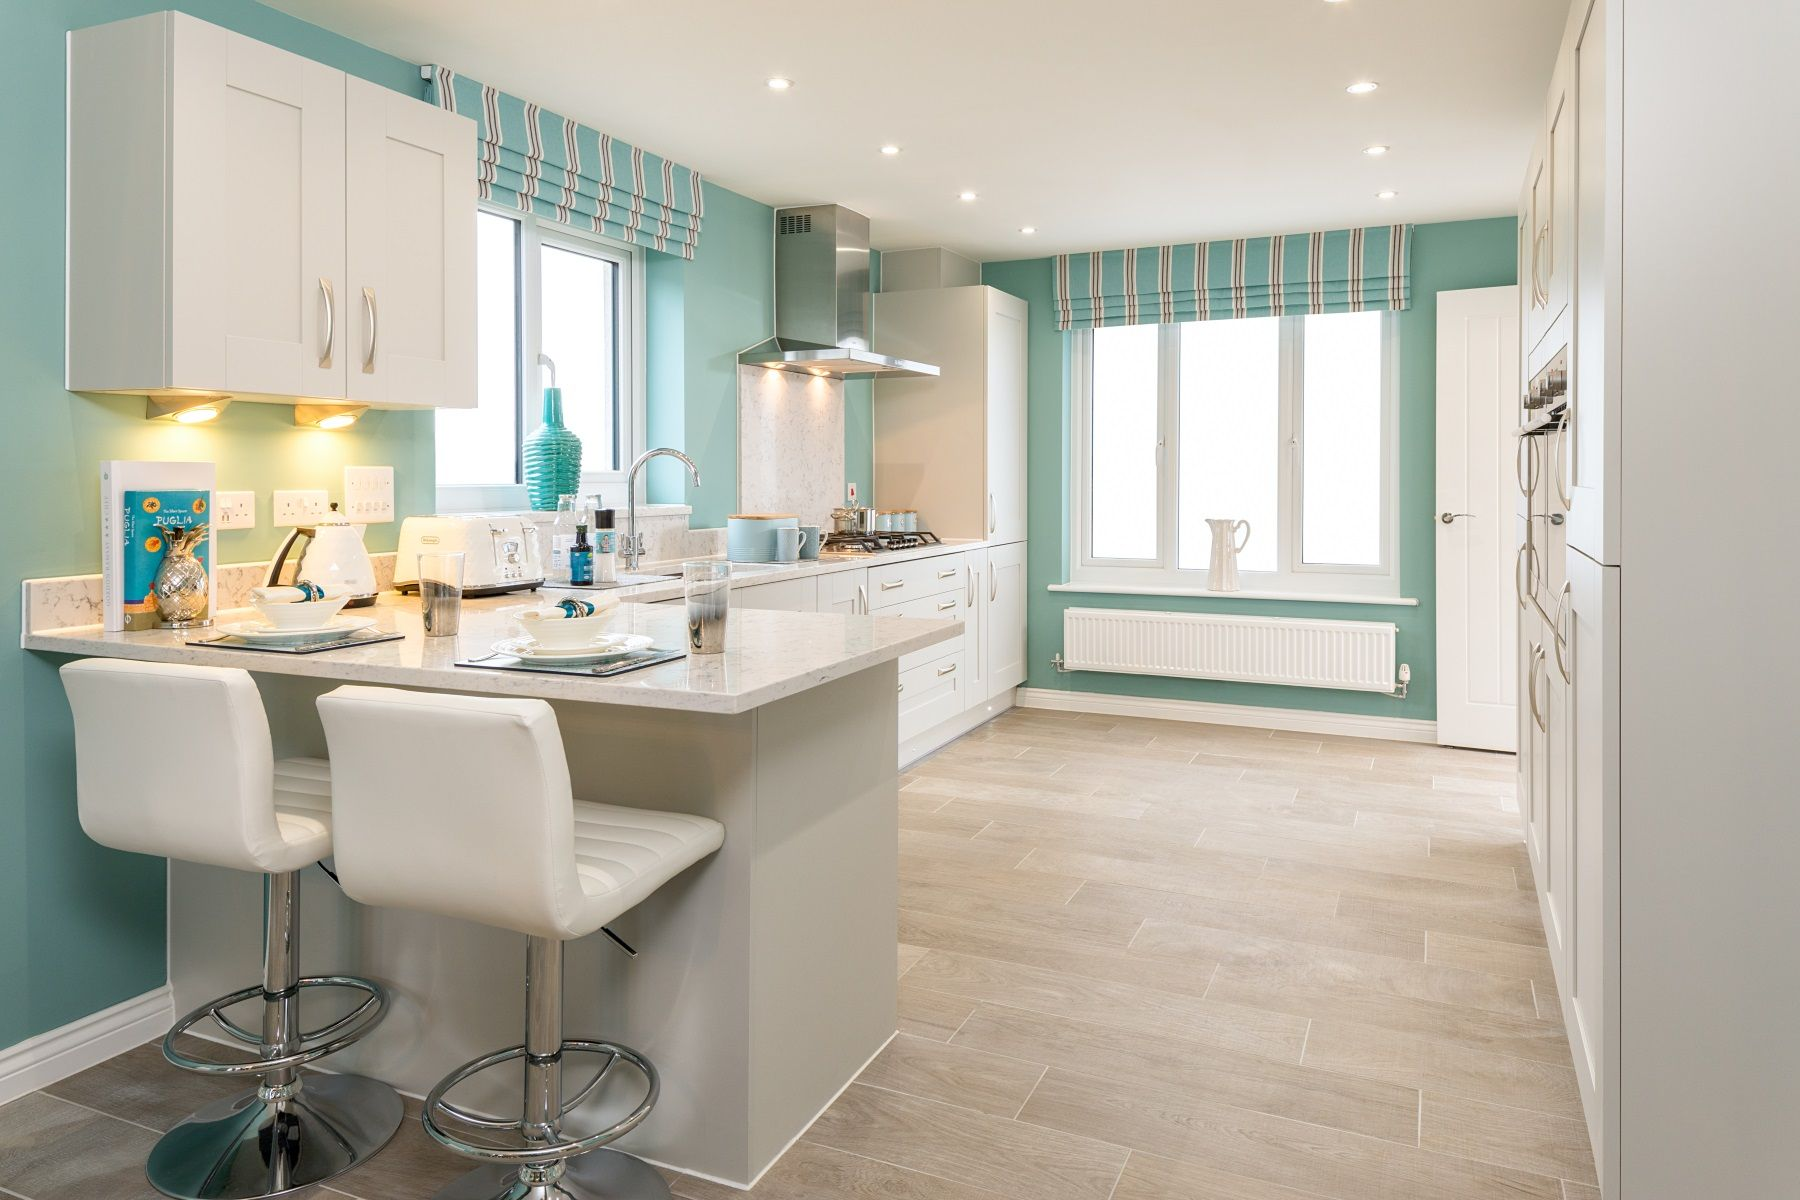 TW Exeter - Rackenford Meadow - Thornford example kitchen 3